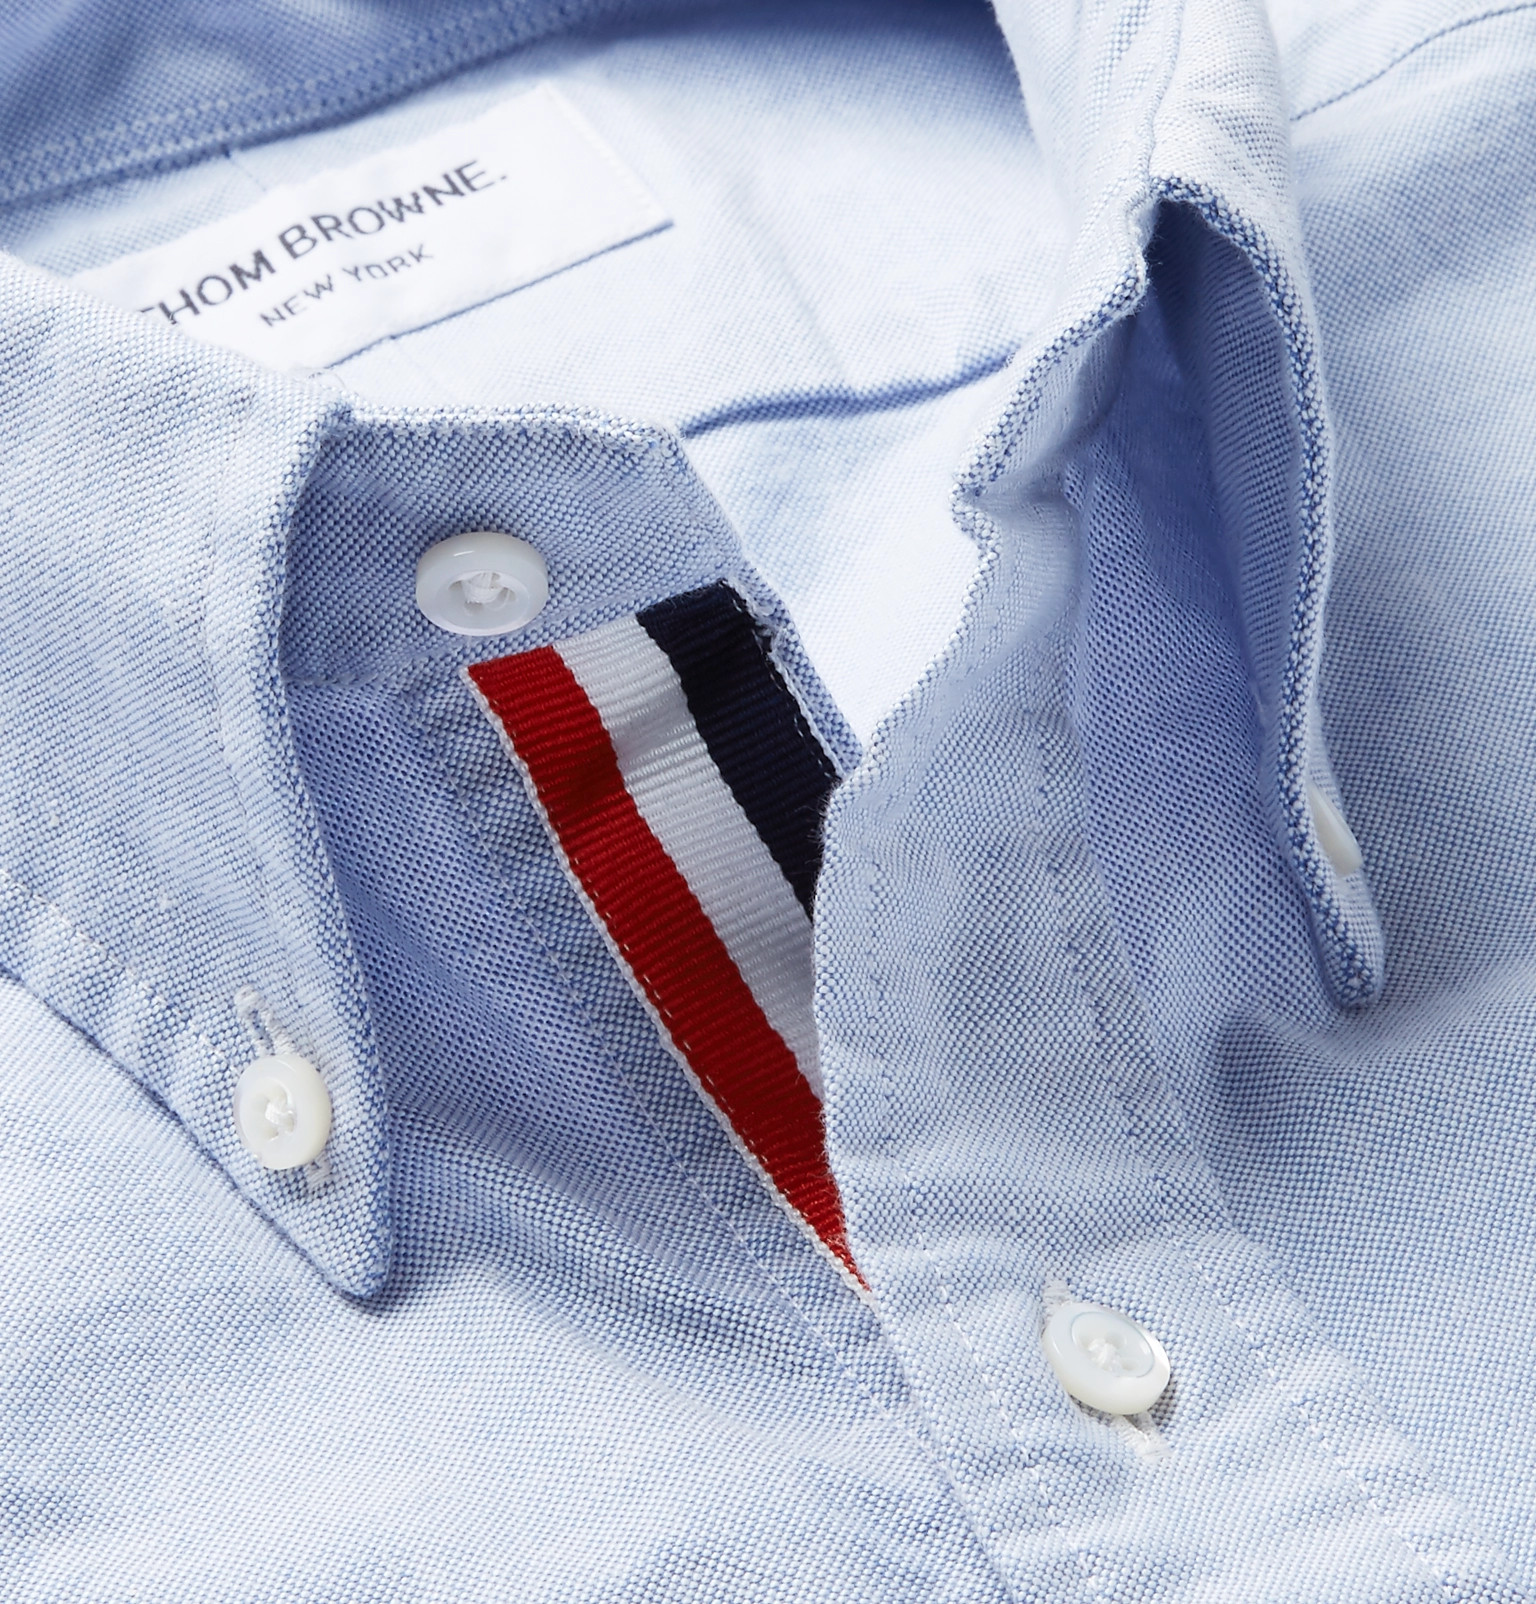 b1dd6a3bd090 Thom BrowneSlim-Fit Button-Down Collar Grosgrain-Trimmed Cotton Oxford Shirt